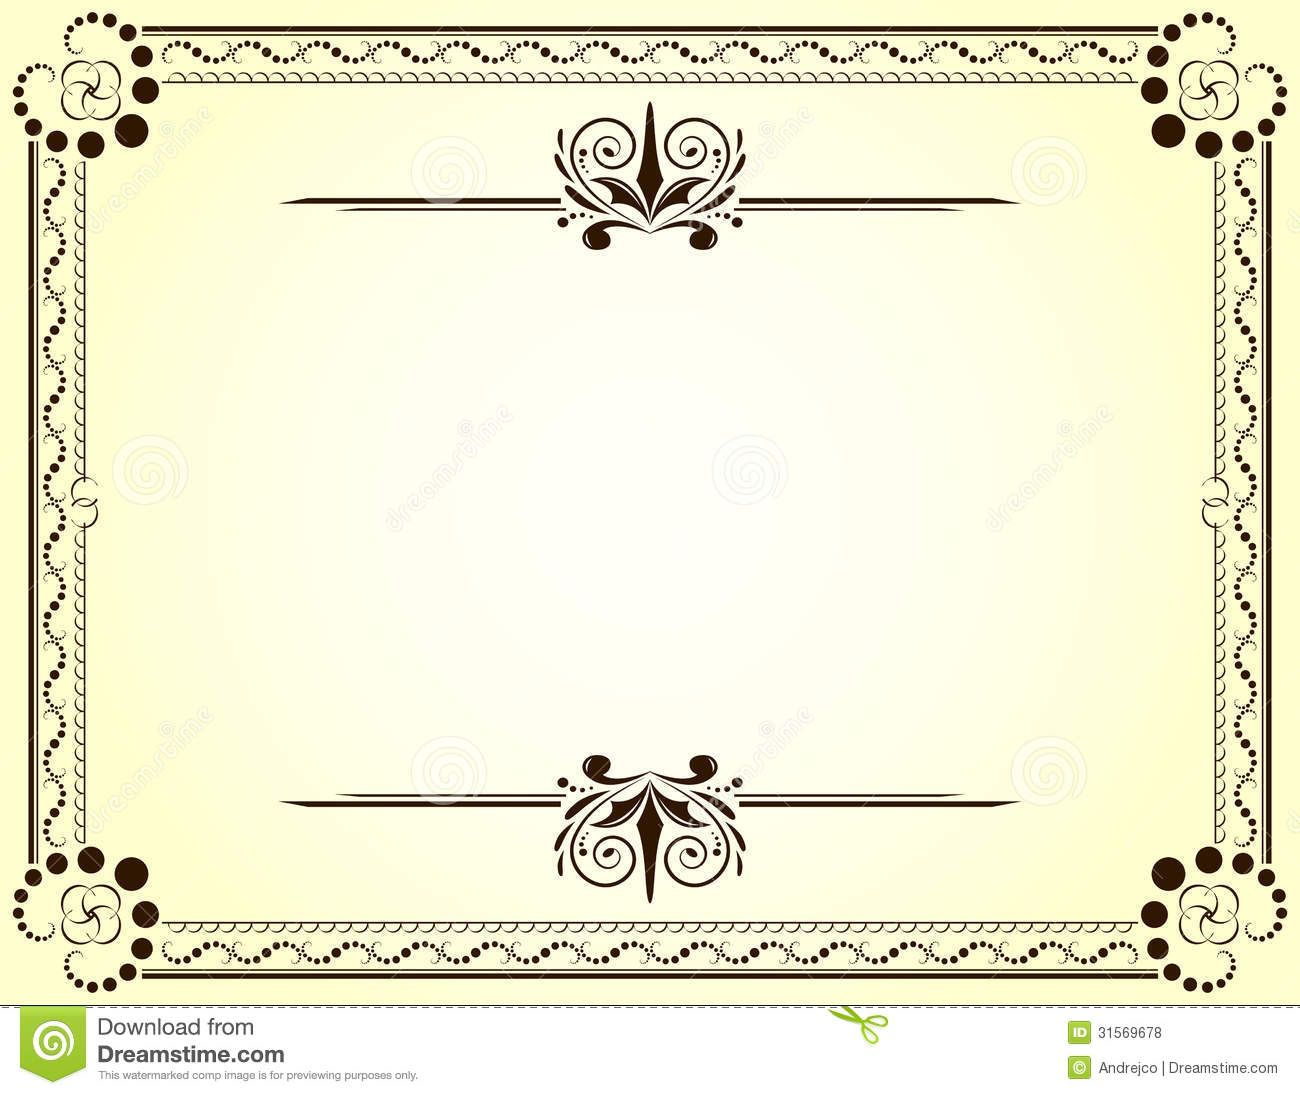 certificate template blue royalty stock images image 764449 certificate template blue royalty stock images image 764449 aaitc1ku